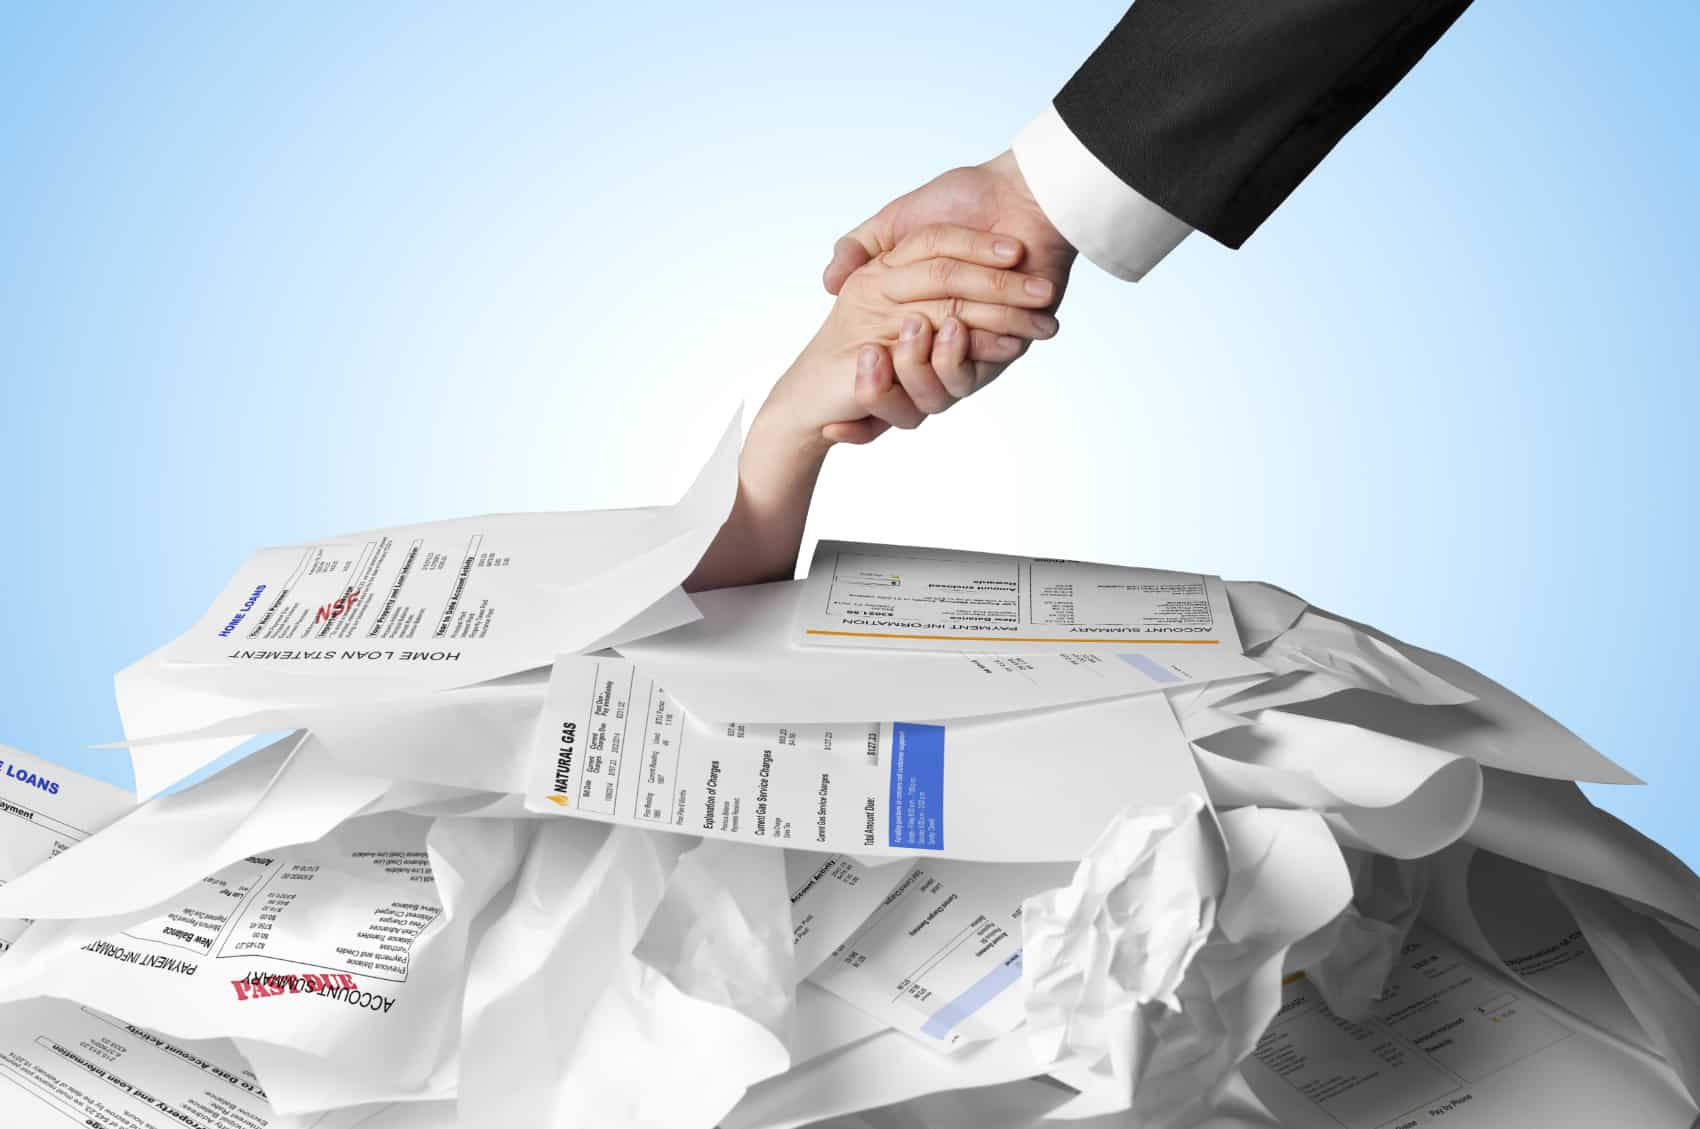 what is debt? Hand being pulled out of pile of debt papers